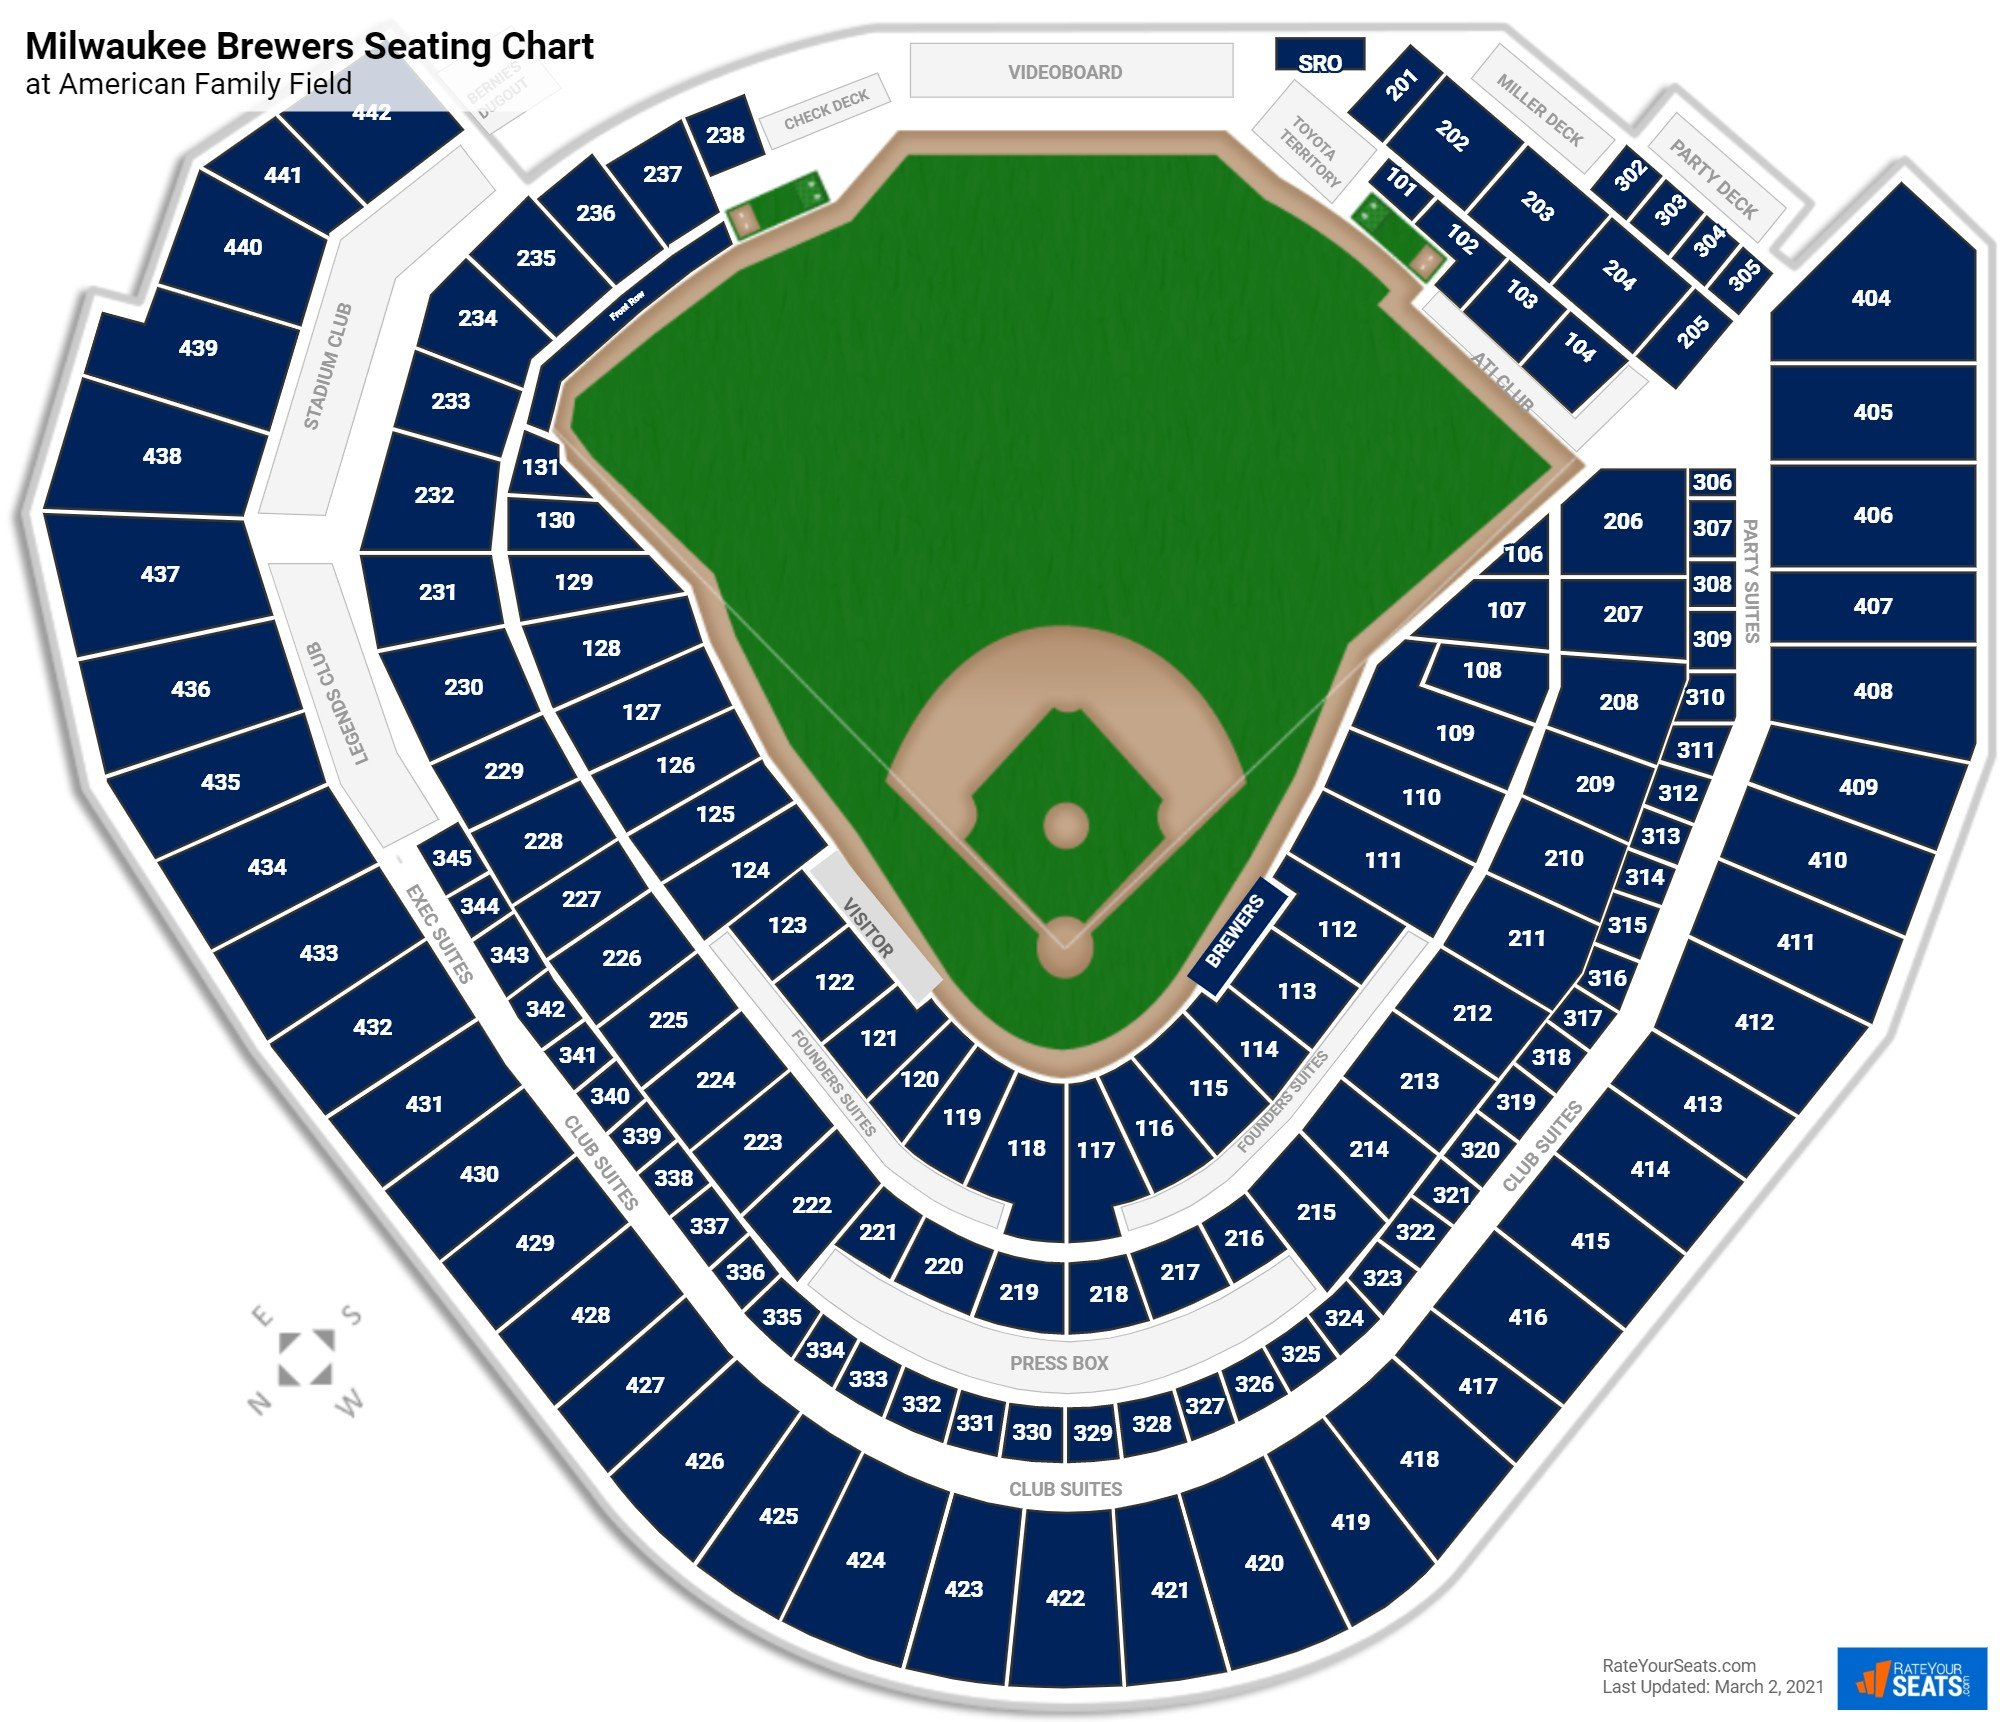 Milwaukee Brewers Seating Chart